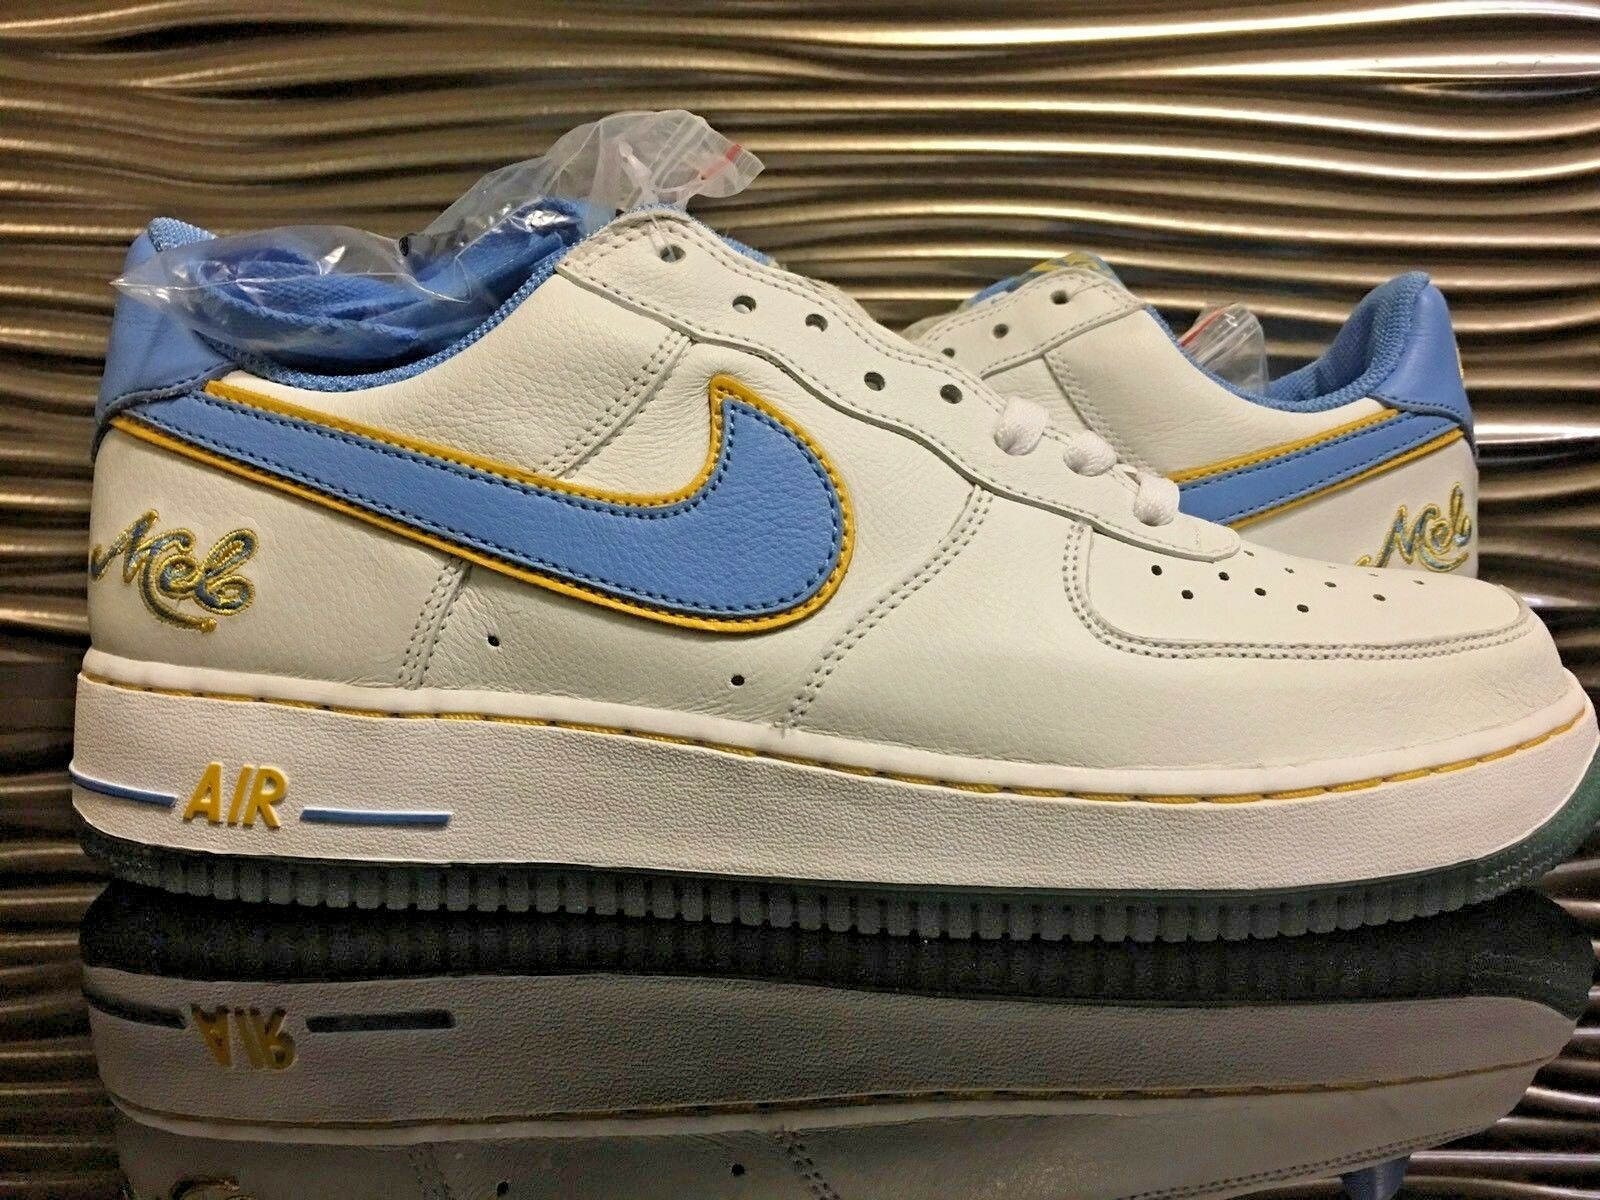 Nike Air Force 1 Low Melo Denver Nuggets Sample DS Men's Size 11 Carmelo Anthony